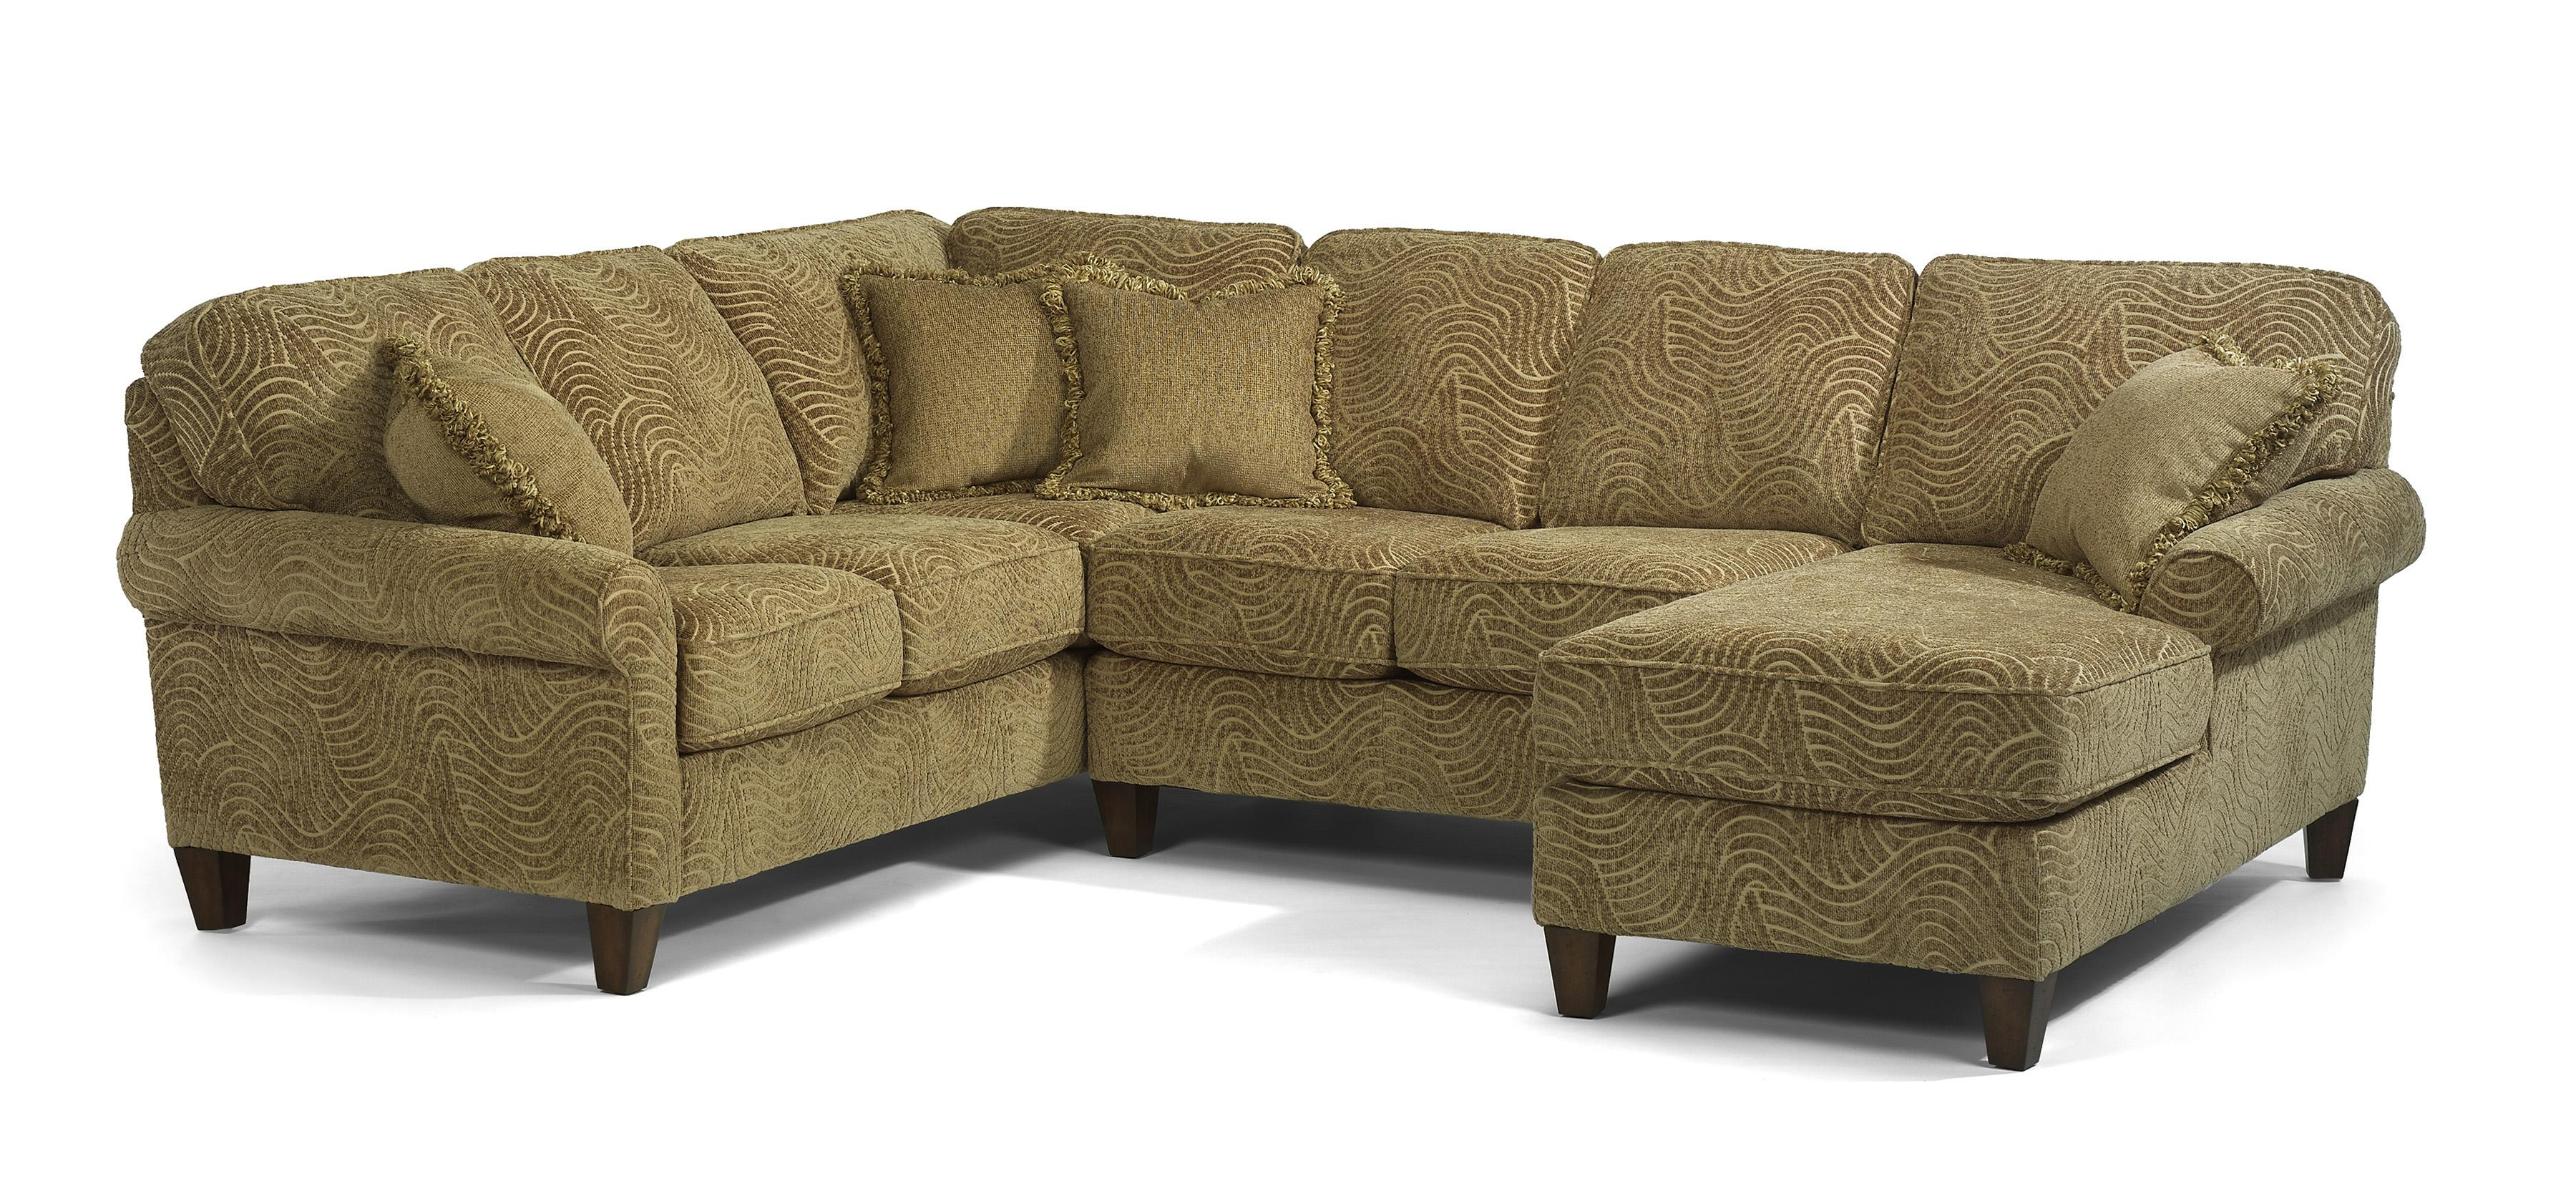 Most Current Sierra Down 3 Piece Sectionals With Laf Chaise Within Flexsteel Westside Casual Corner Sectional Fabric Upholstered Sofa (View 10 of 20)